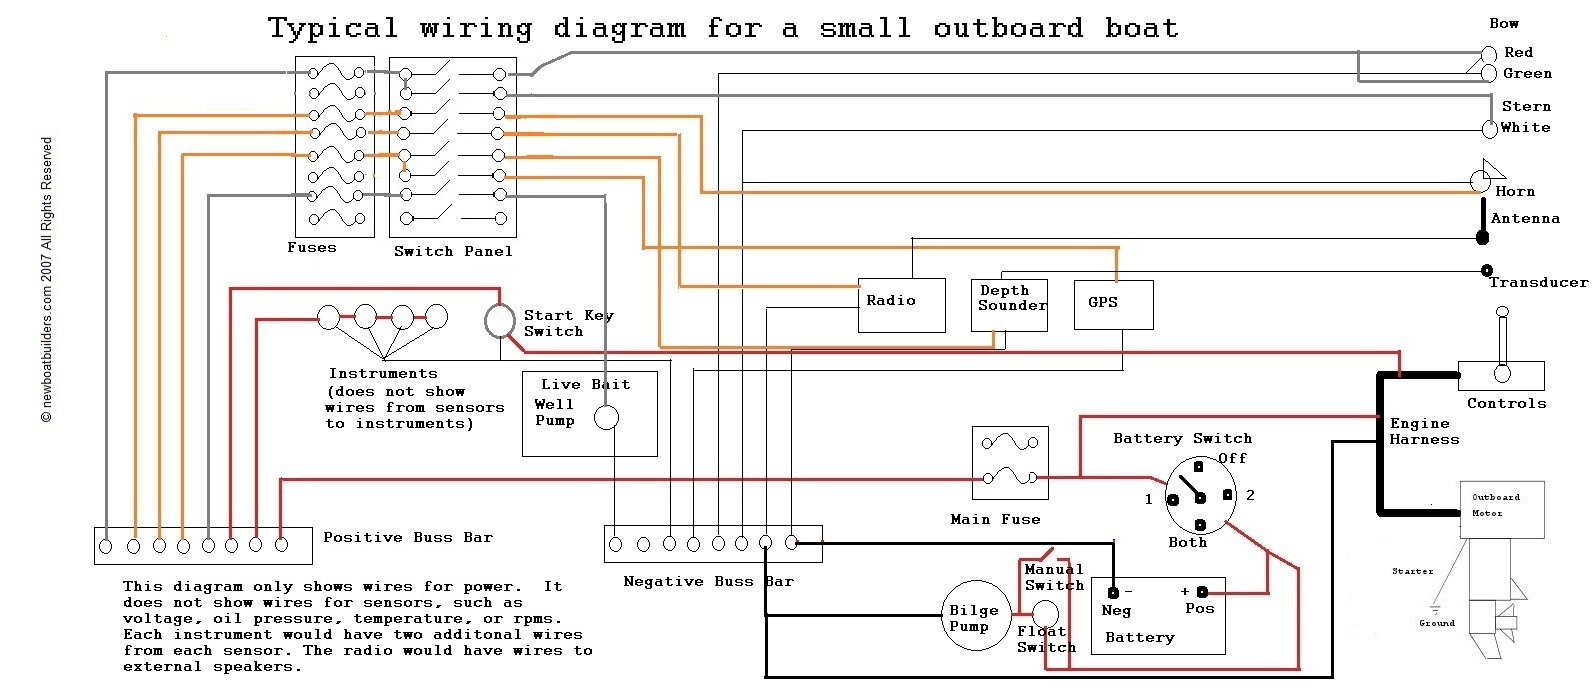 equipment wiring diagrams hghogoii newtrading info \u2022boat building standards basic electricity wiring your boat rh newboatbuilders com equipment wiring diagrams wiring diagram